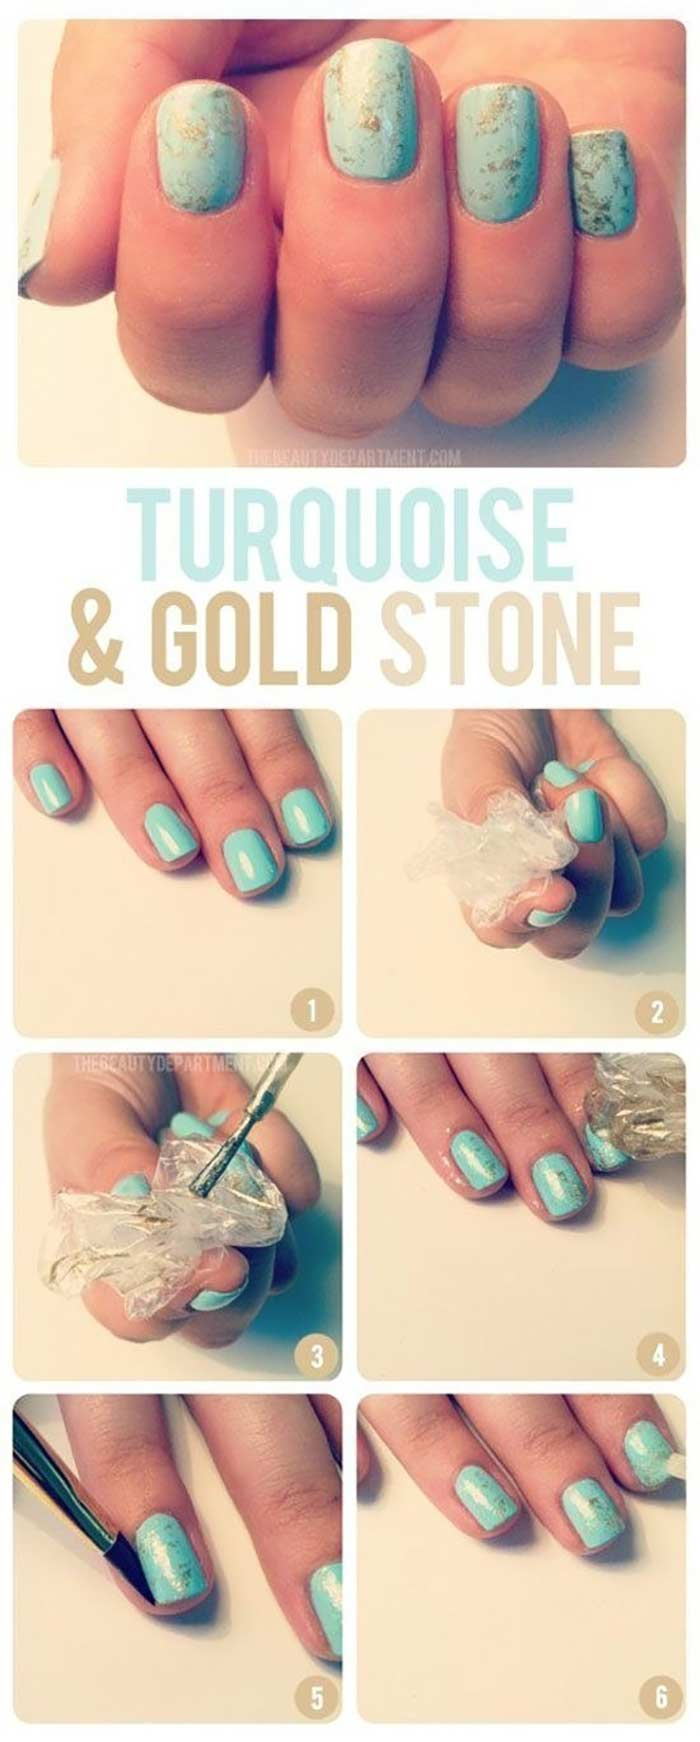 Top 60 easy nail art design tutorials for short nails 2017 turquoise and gold nails cute nail designs for short nails prinsesfo Gallery